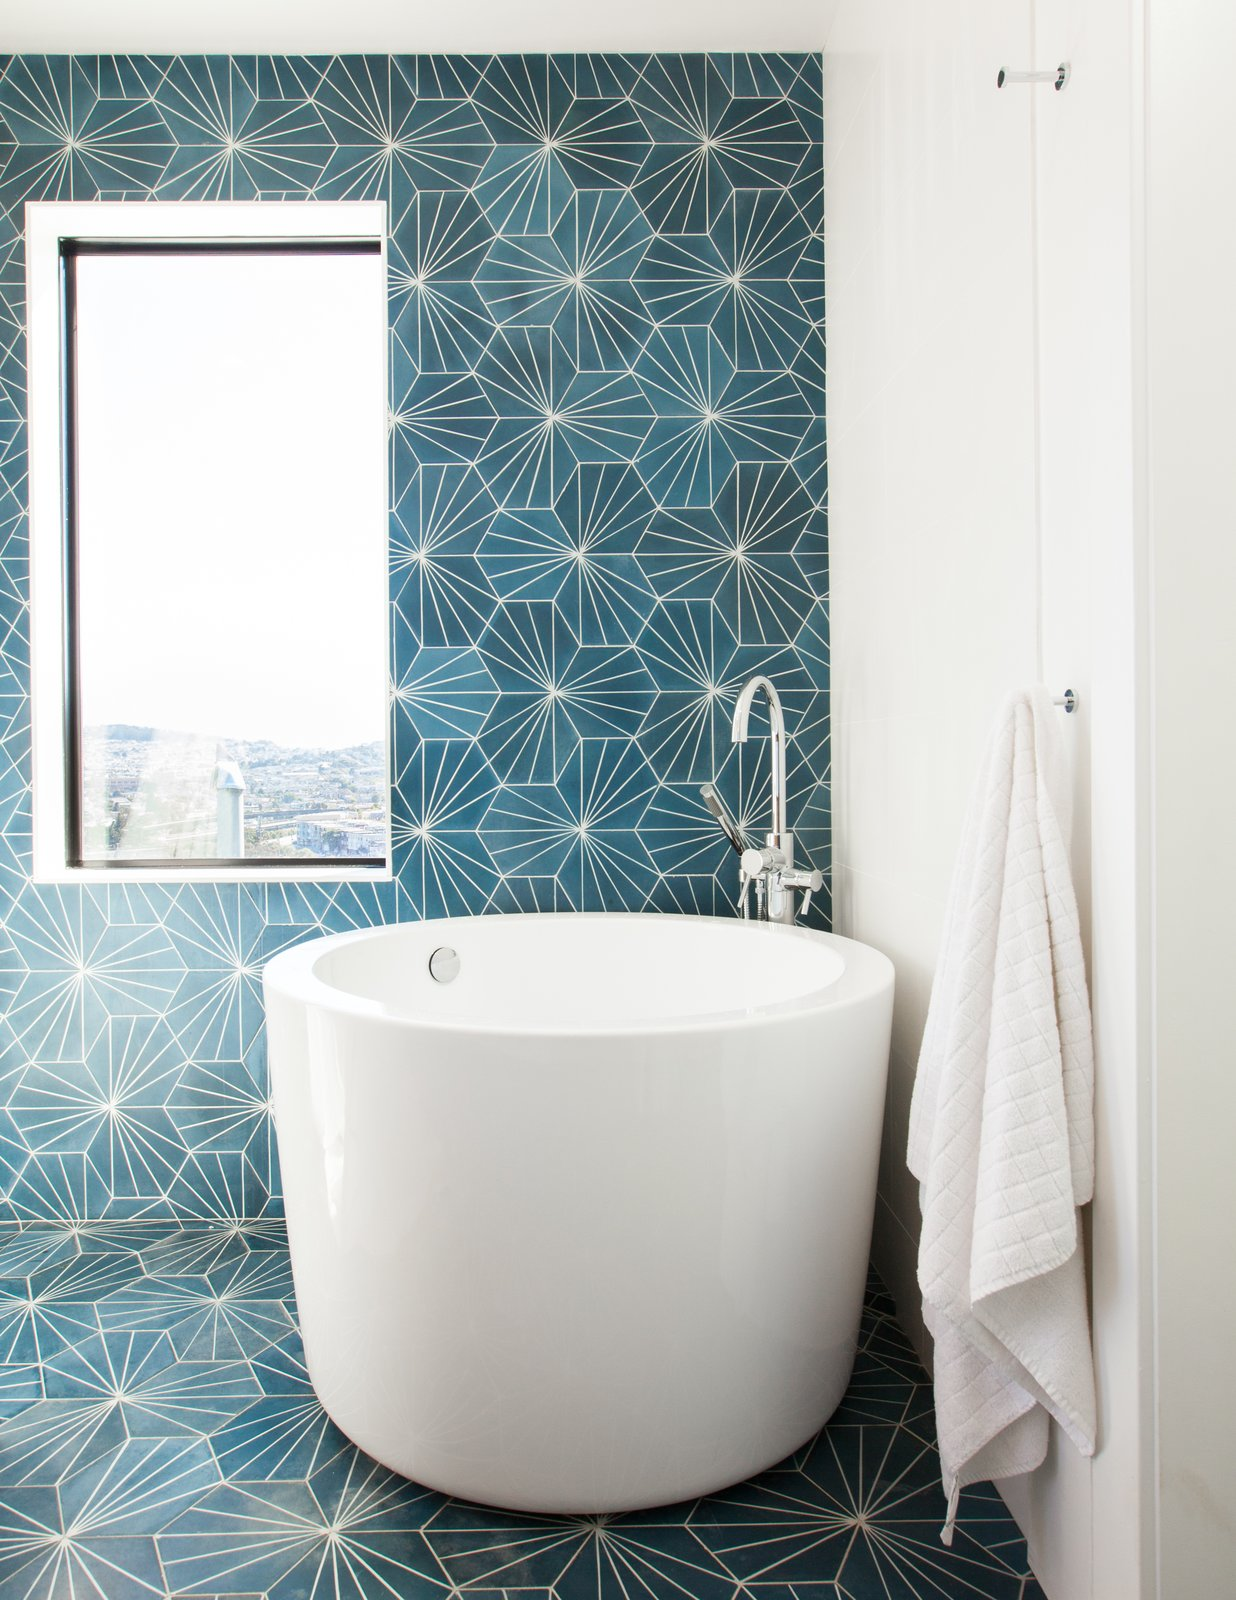 Bath Room, Cement Tile Floor, Soaking Tub, Open Shower, Recessed Lighting, and Ceramic Tile Wall soaking tub in a corner of the master bathroom  Glen Park House by McElroy Architecture